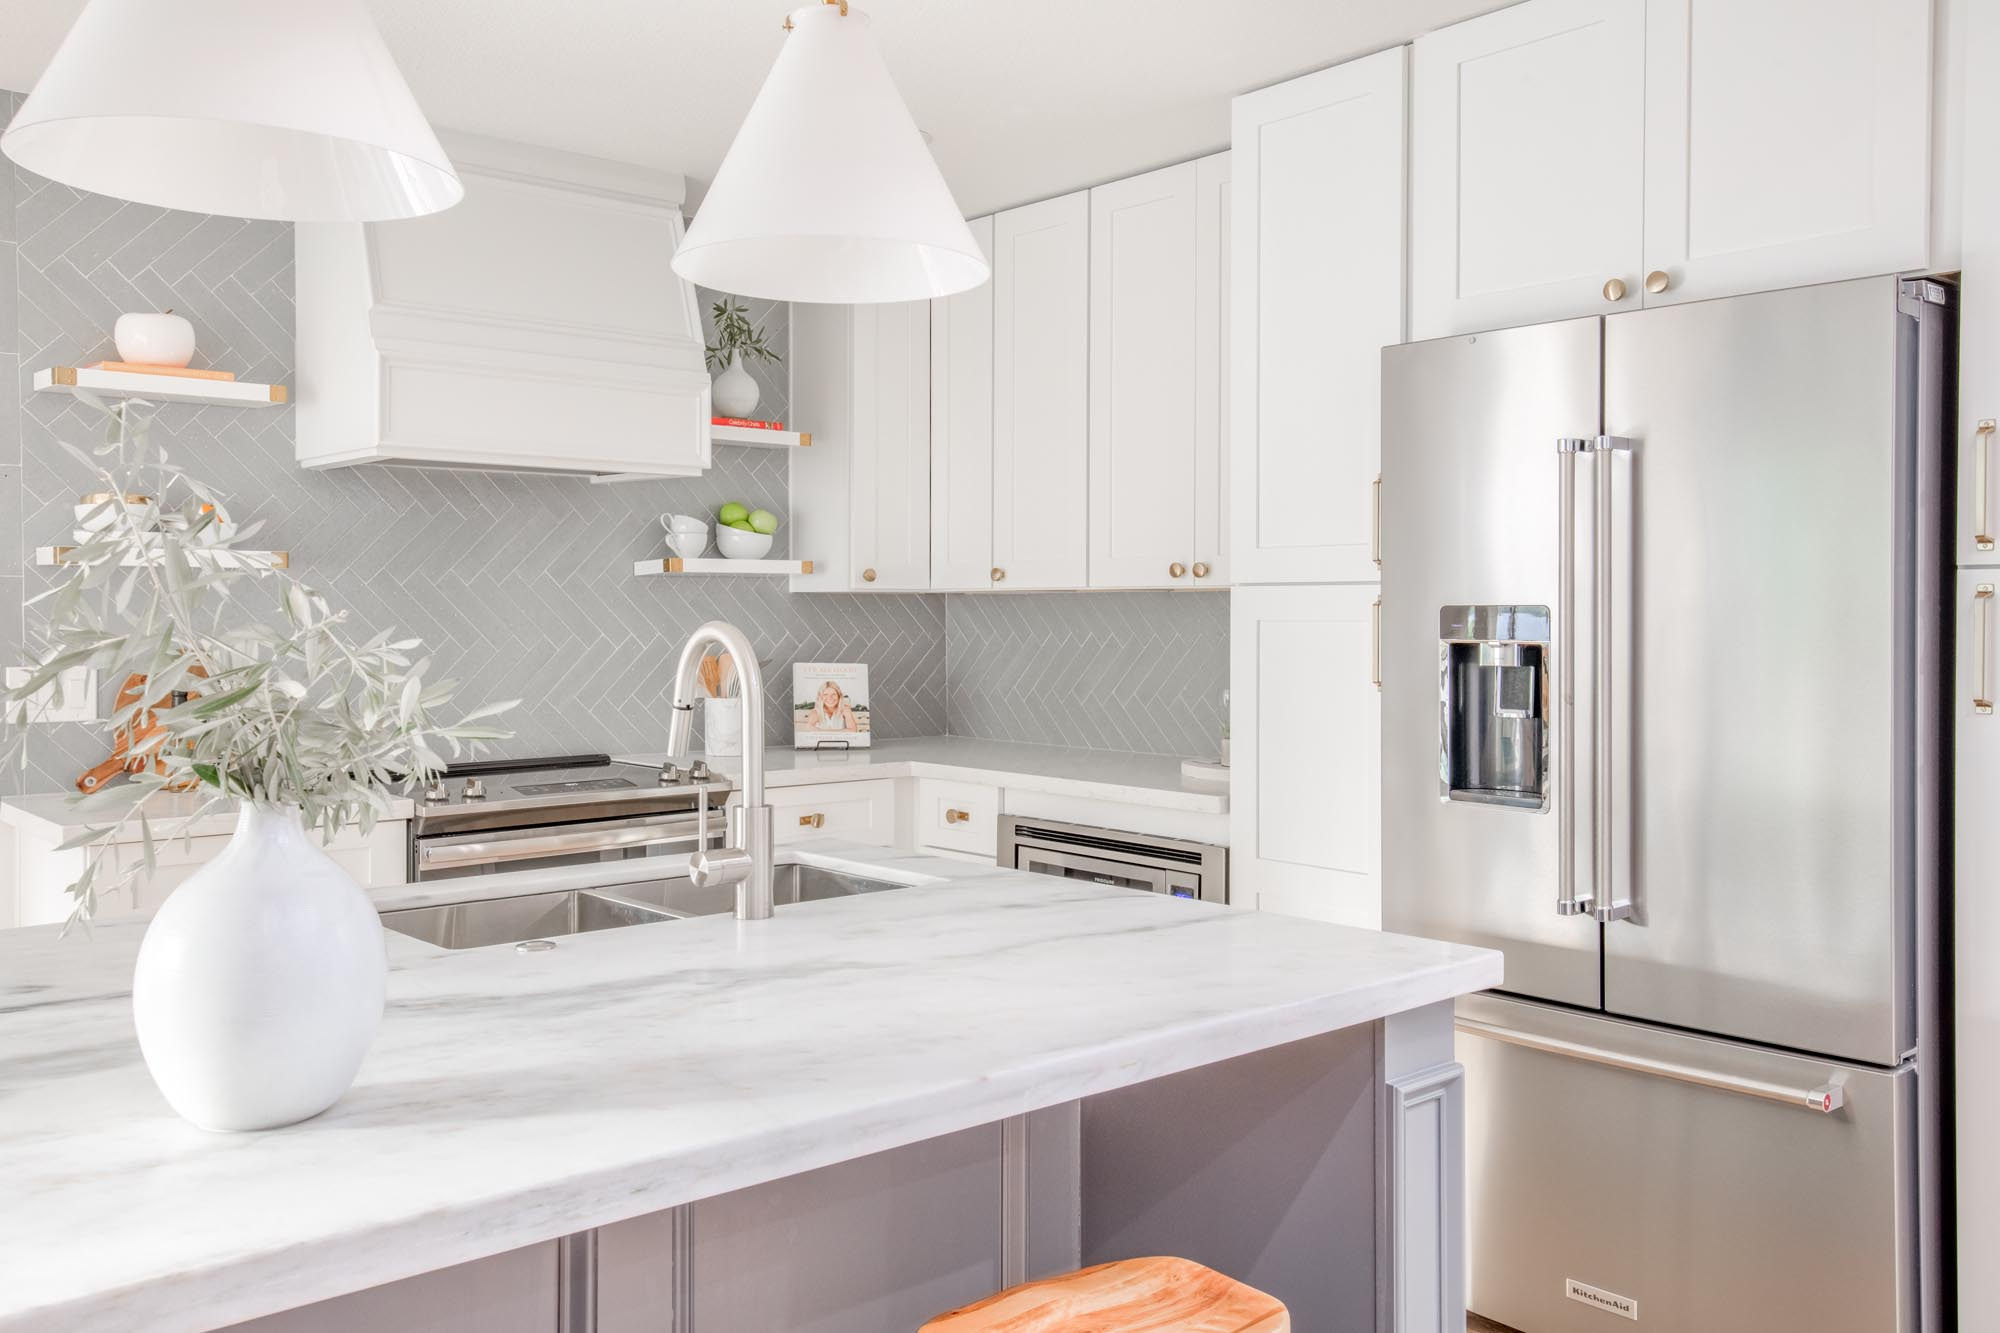 Modern kitchen with white cabinets bar style countertop island